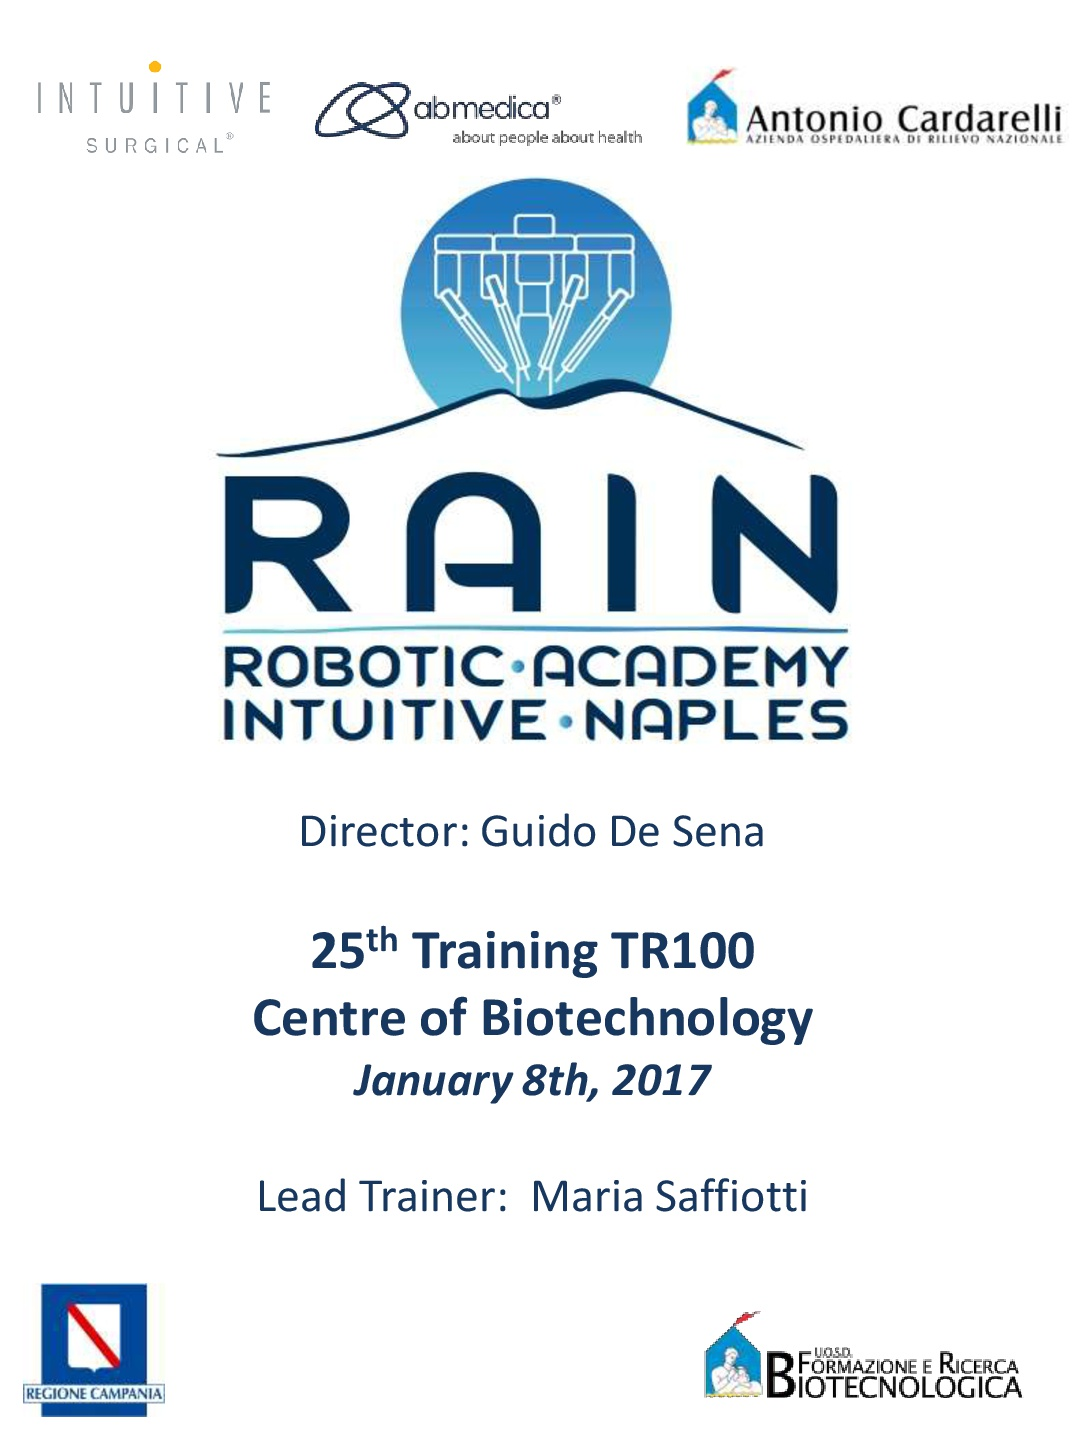 Robotic Academy Intuitive Naples (RAIN) – 25th Training TR100